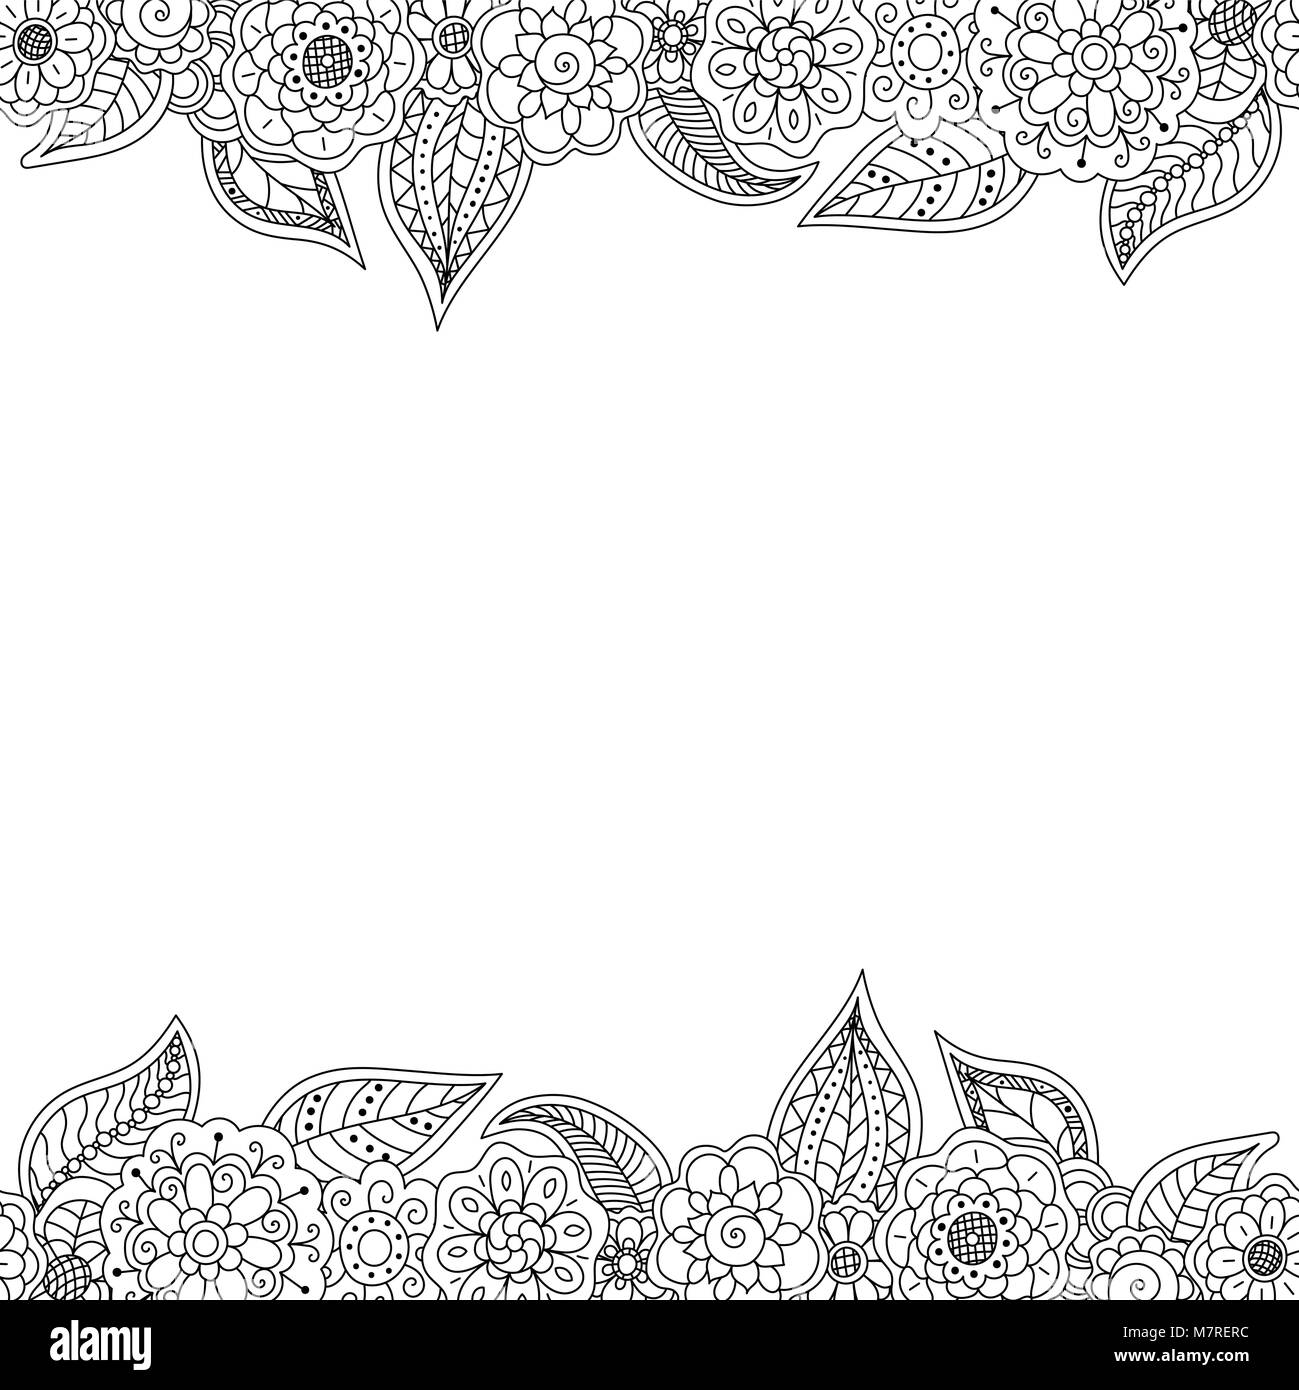 Vector Seamless Decorative Border Of Doodle Floral Elements With Copy Space Black And White Coloring Page Book For Adult